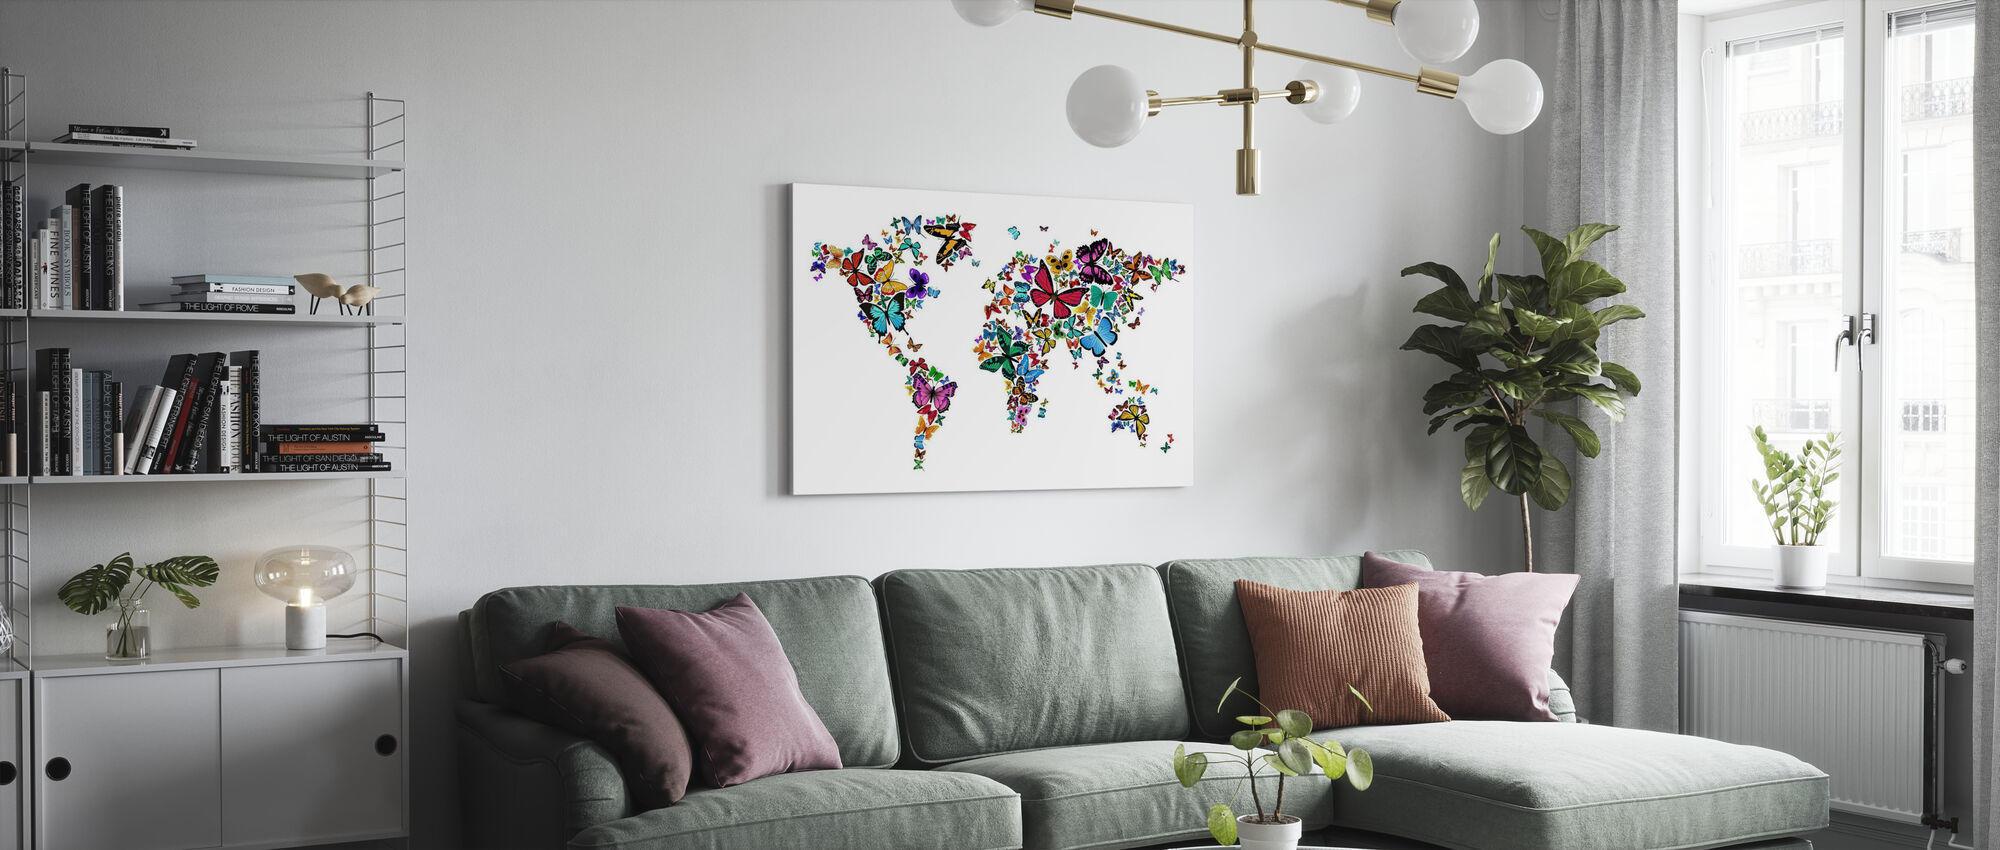 Large Butterflies World Map - Canvas print - Living Room